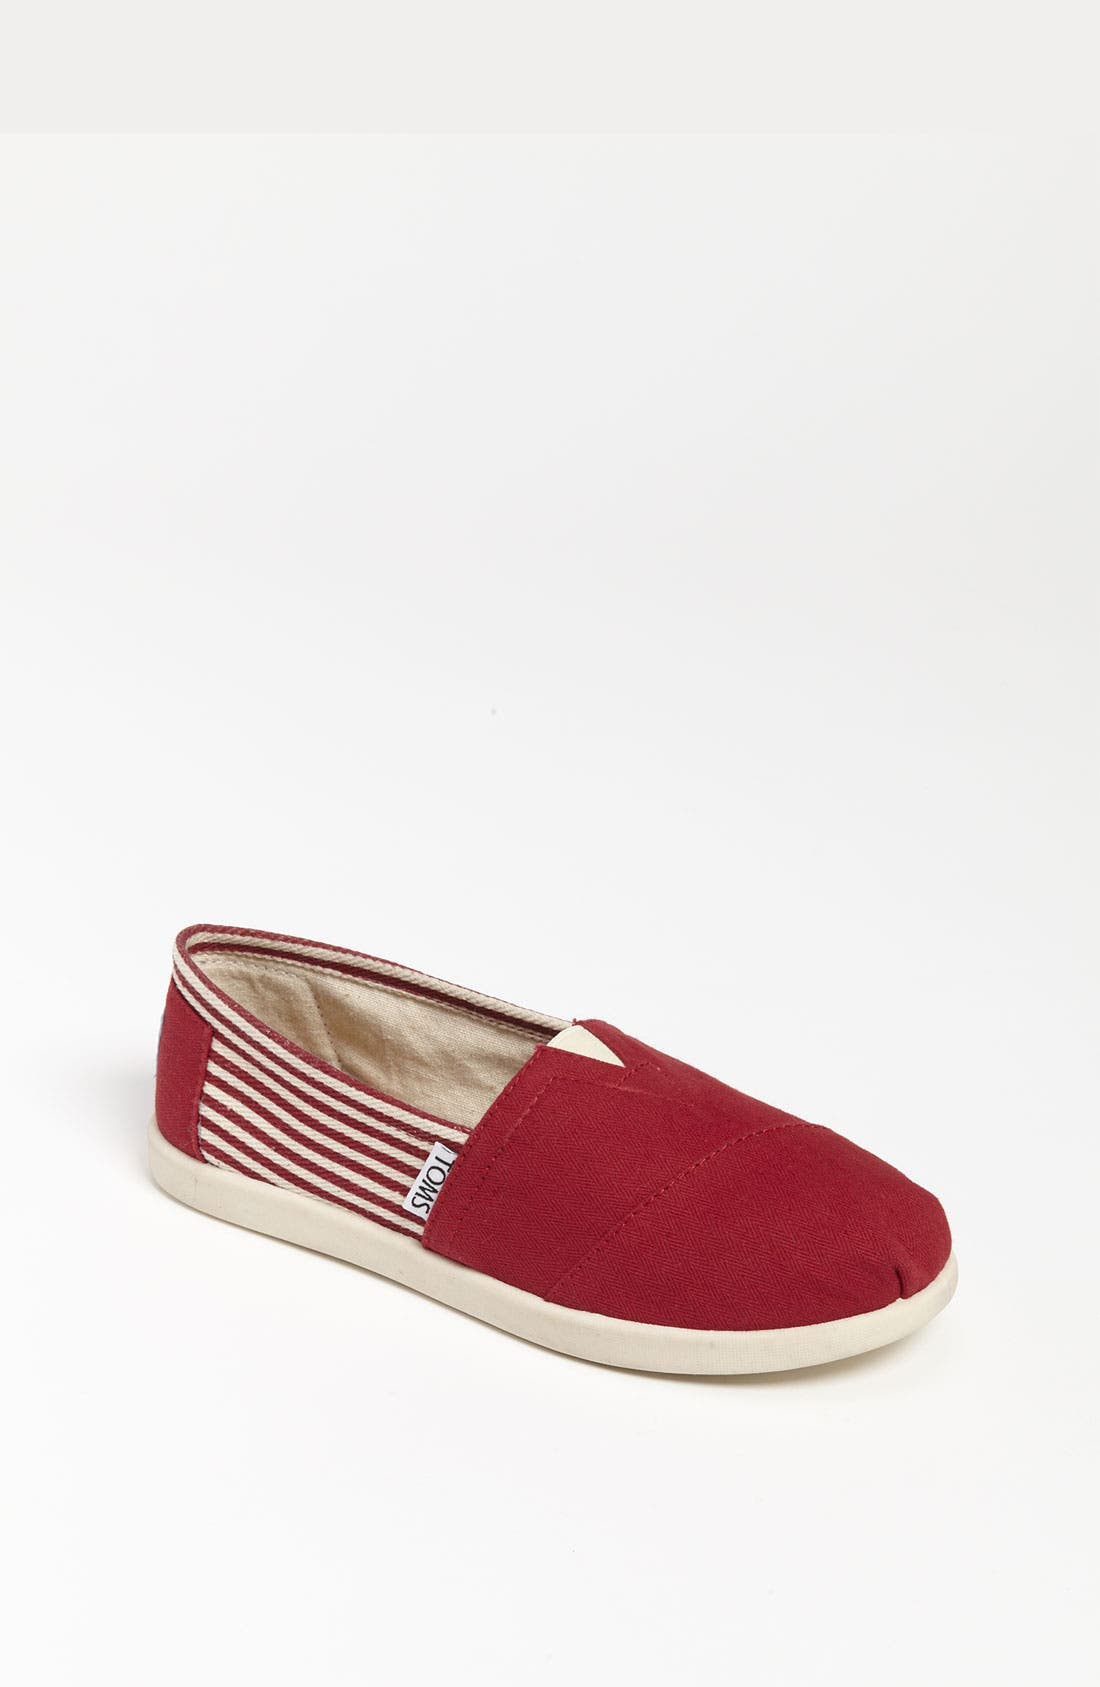 Main Image - TOMS 'Classic Youth - University' Canvas Slip-On (Toddler, Little Kid & Big Kid) (Nordstrom Exclusive)